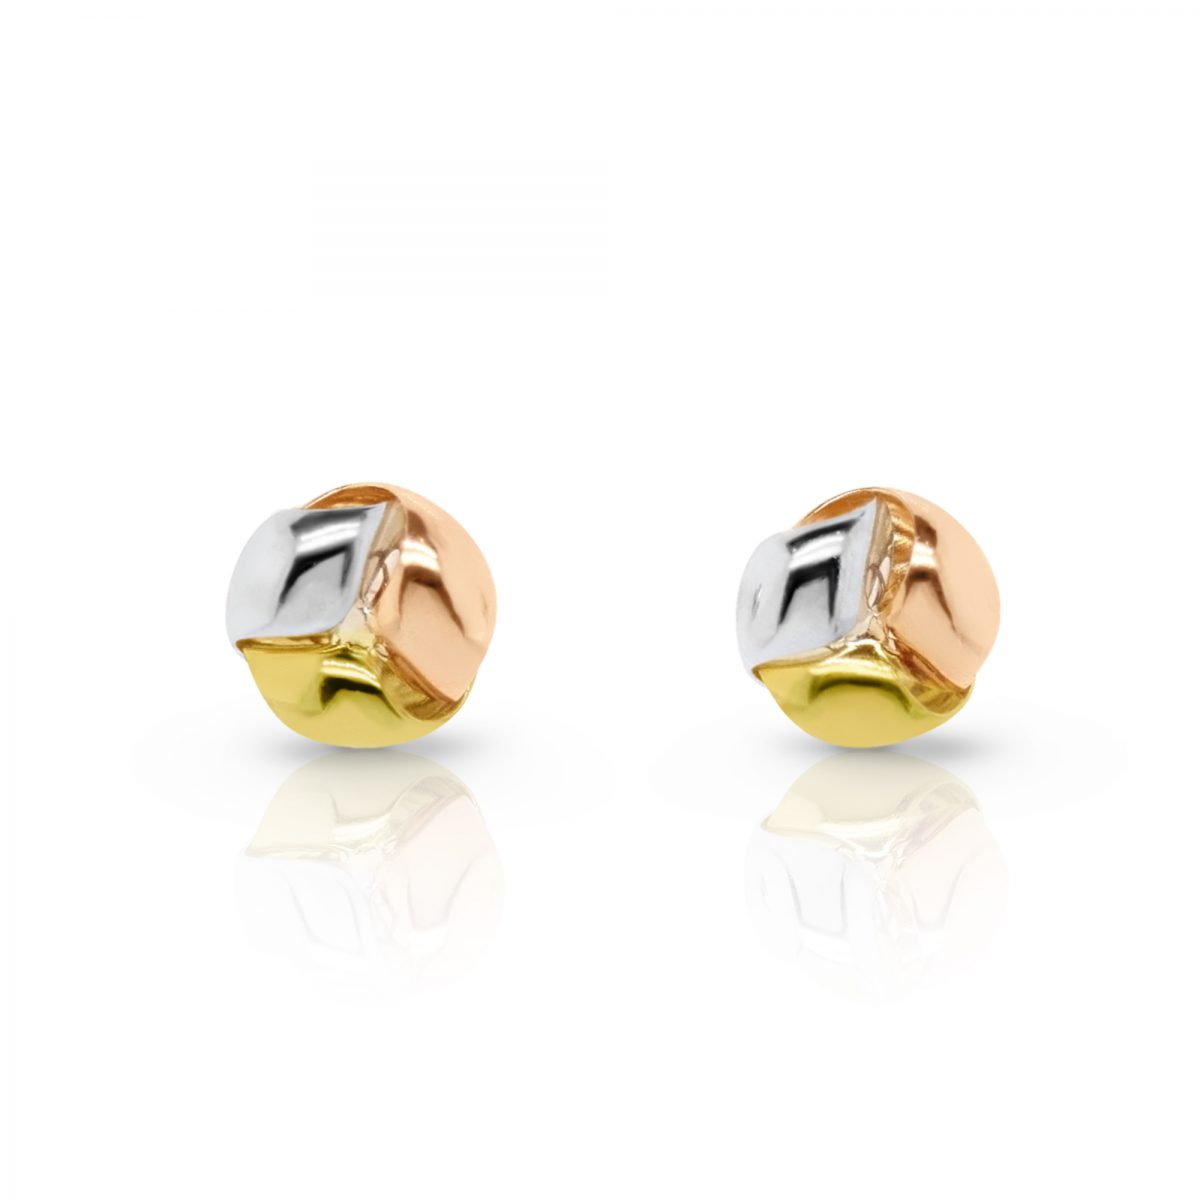 66bebeb37 18ct 3 Tone Gold Knot Stud Earrings | Catanach's Jewellers